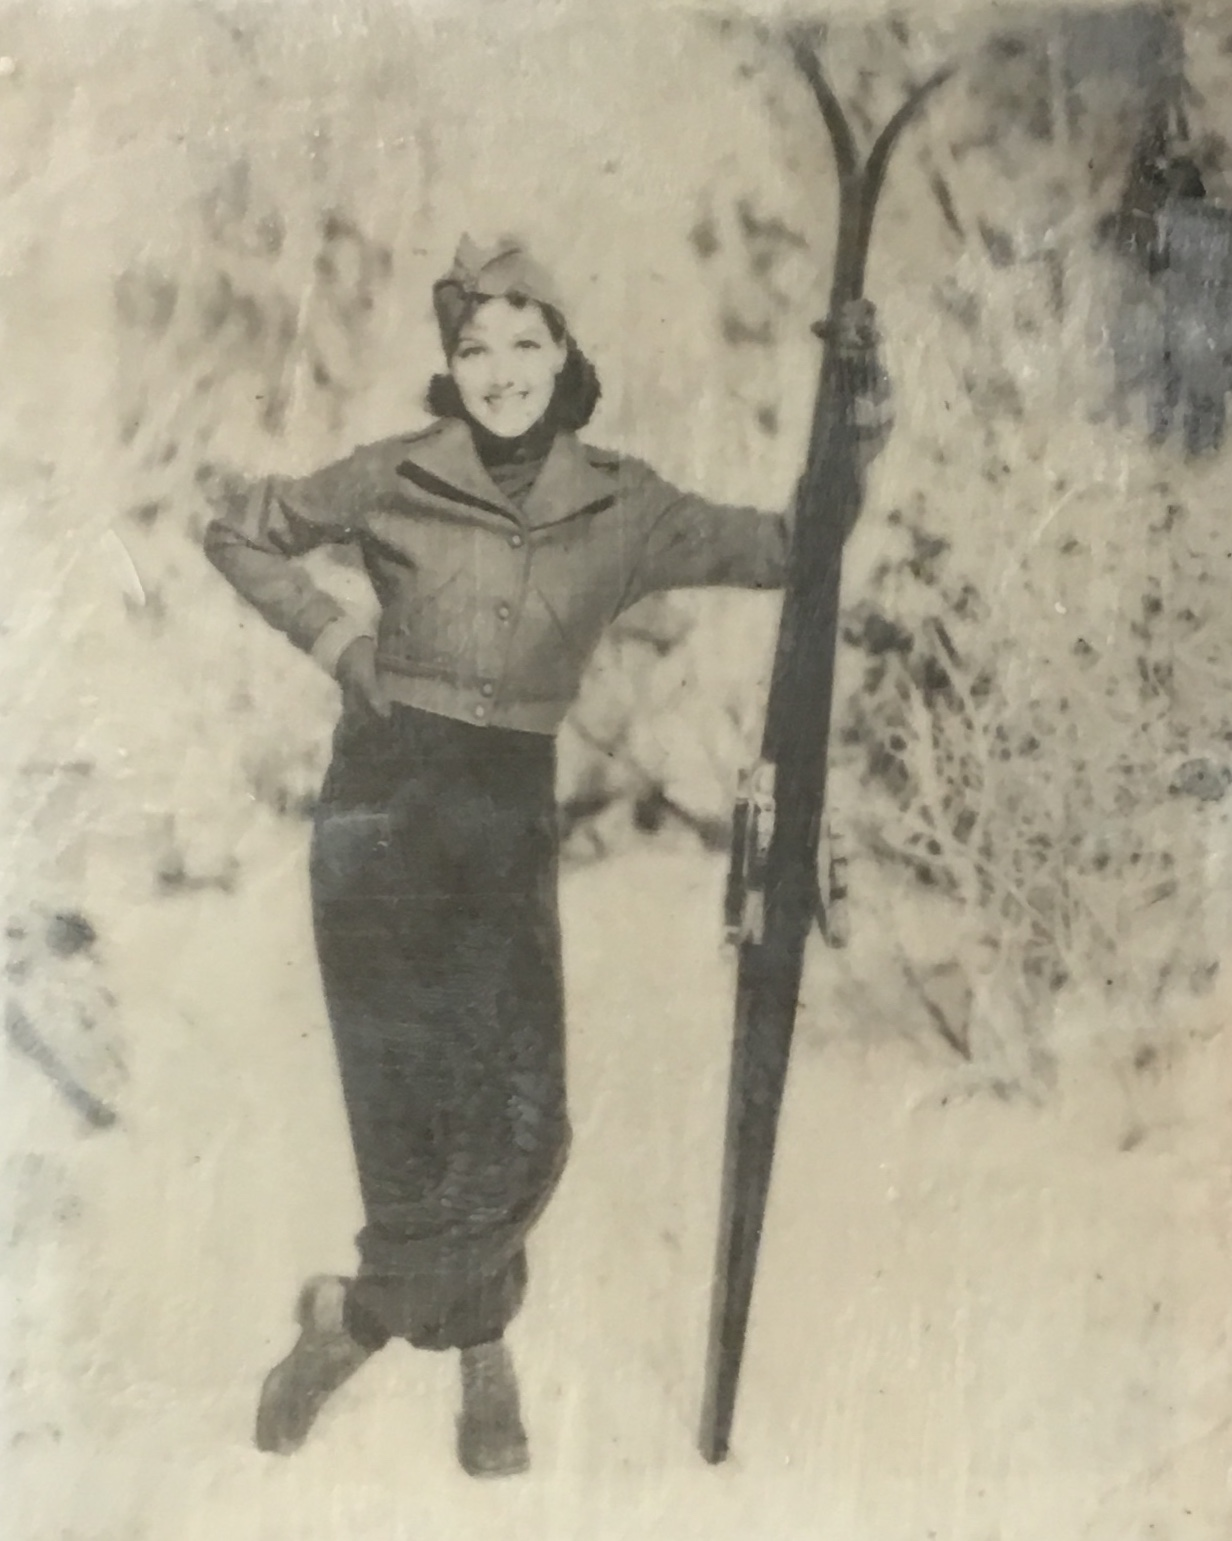 Vintage Skier 1, Encaustic painting by Lee Anne LaForge | Effusion Art Gallery + Cast Glass Studio, Invermere BC